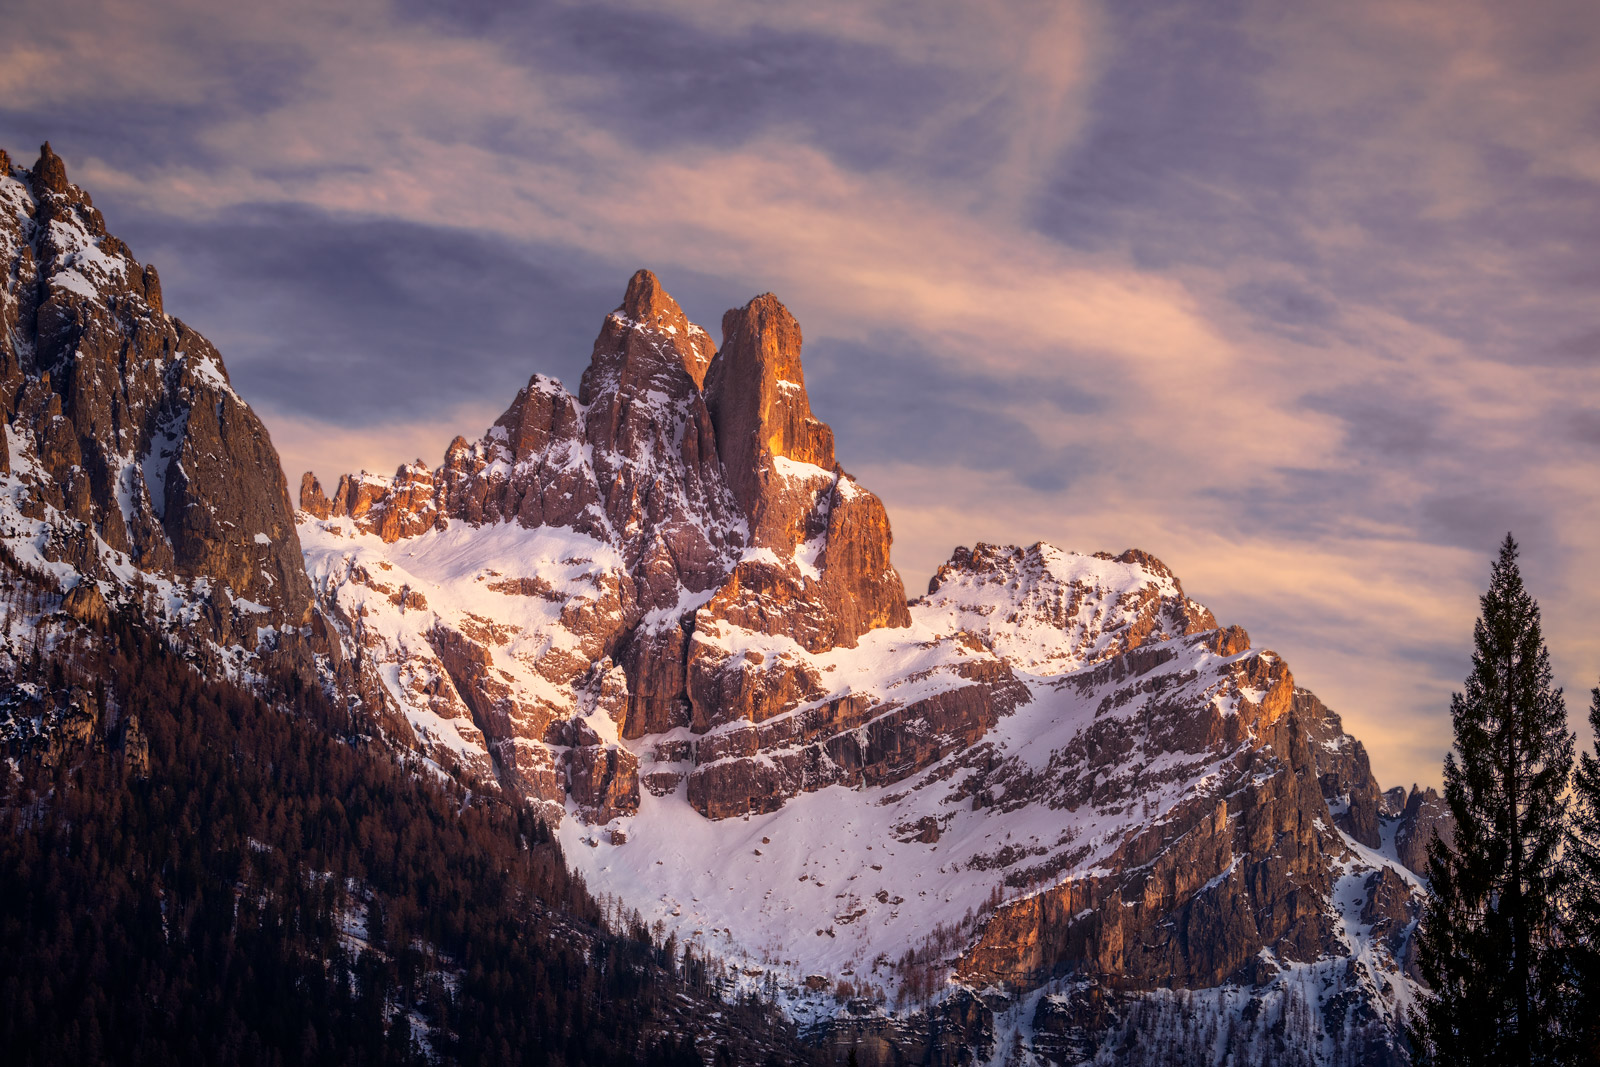 Italy, Dolomites, Mountains, Snow Covered, limited edition, photograph, fine art, landscape, photo